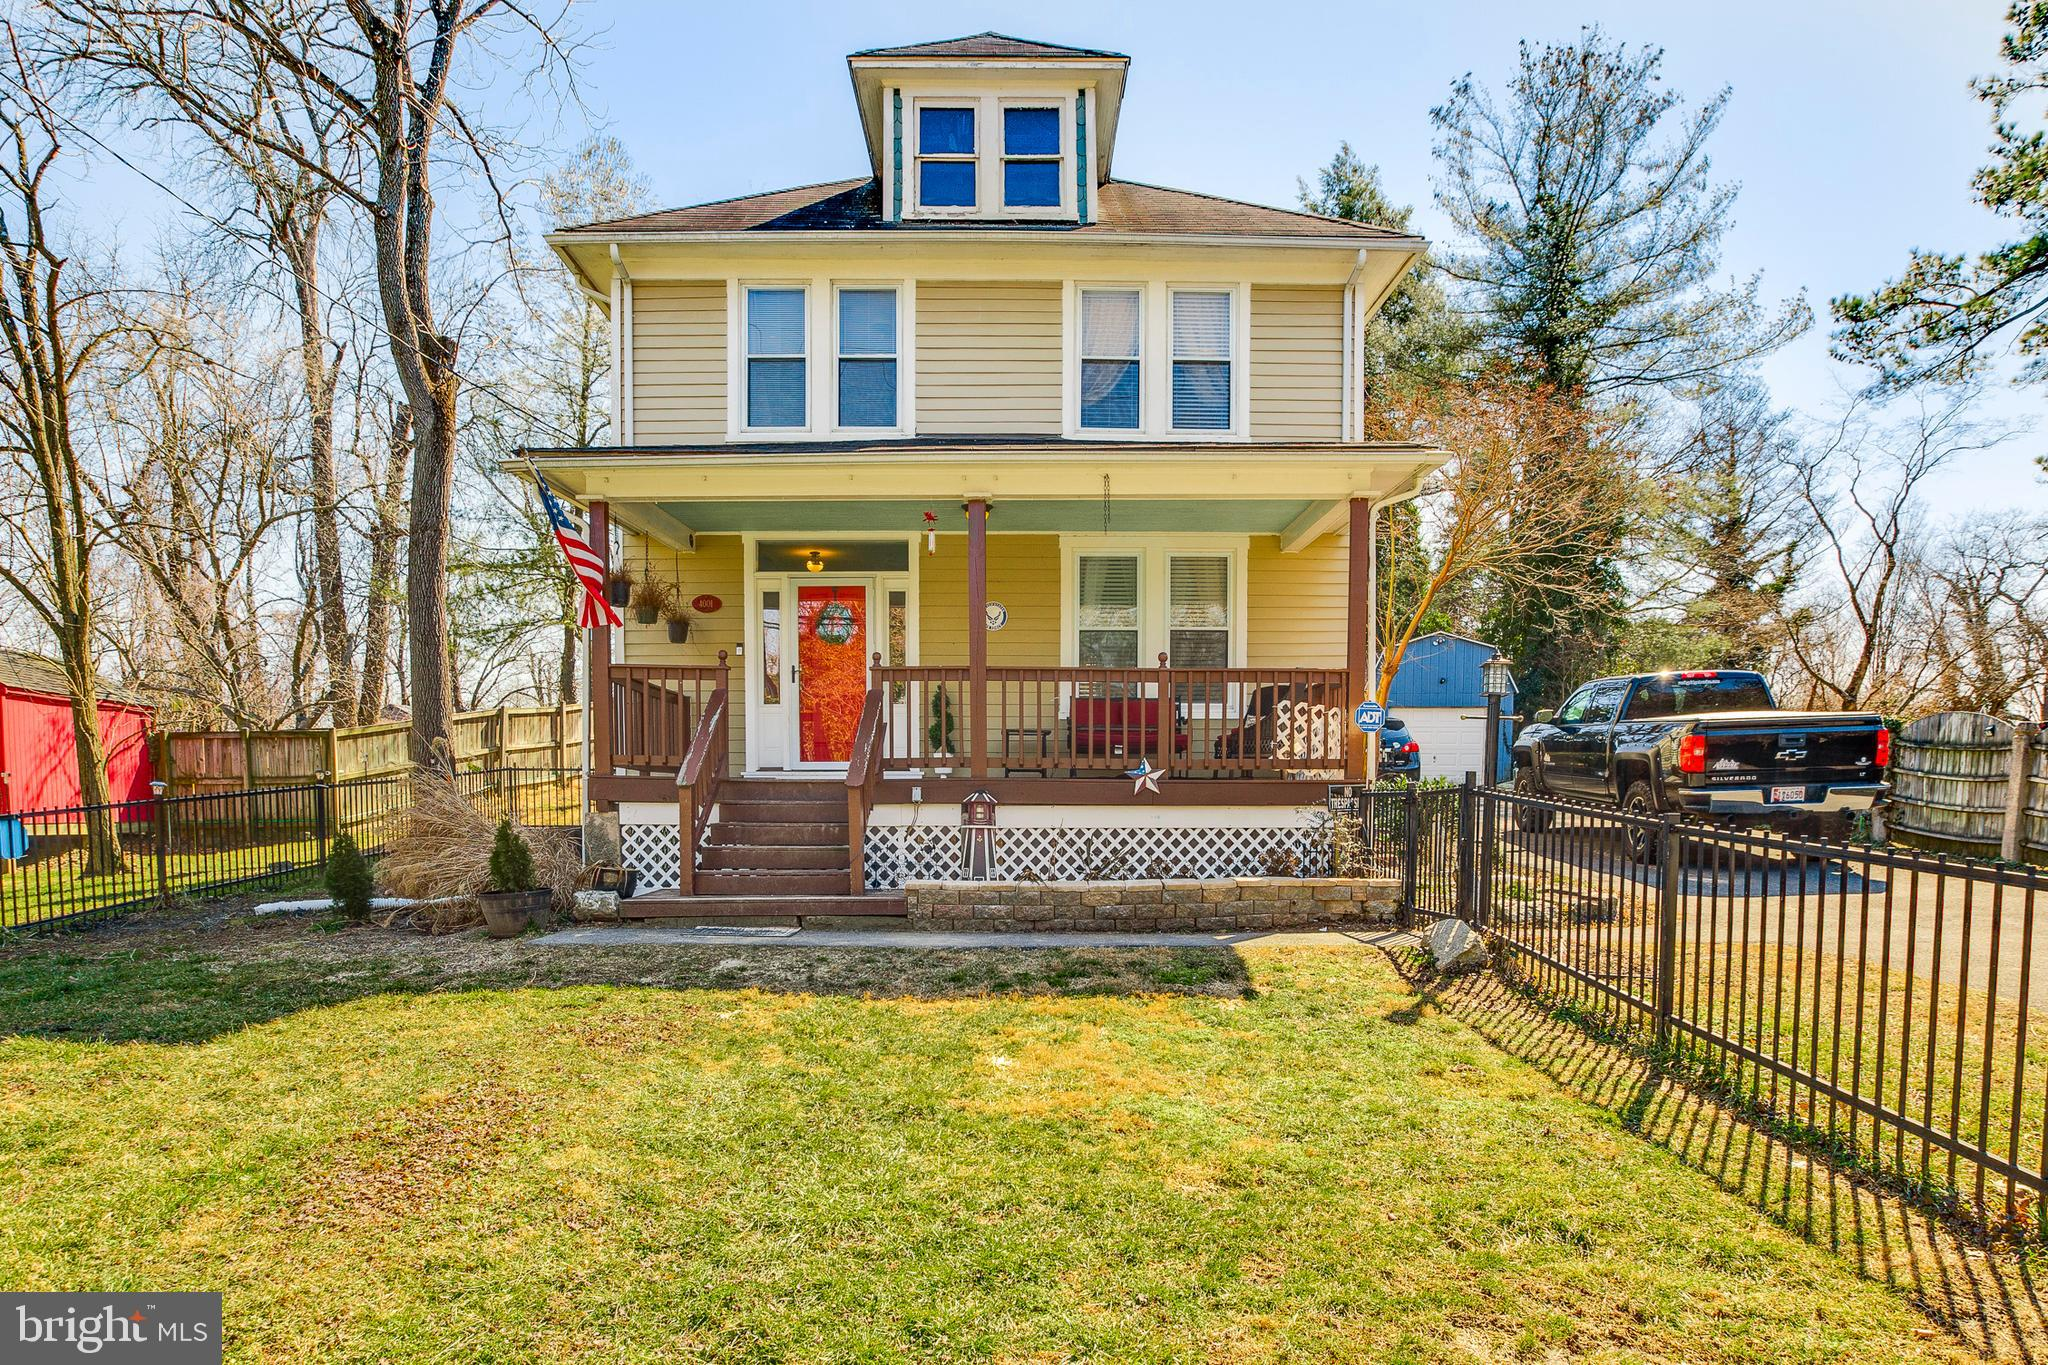 Welcome home to this charming, 4 bedroom Colonial featuring historic details & modern updates in Ell